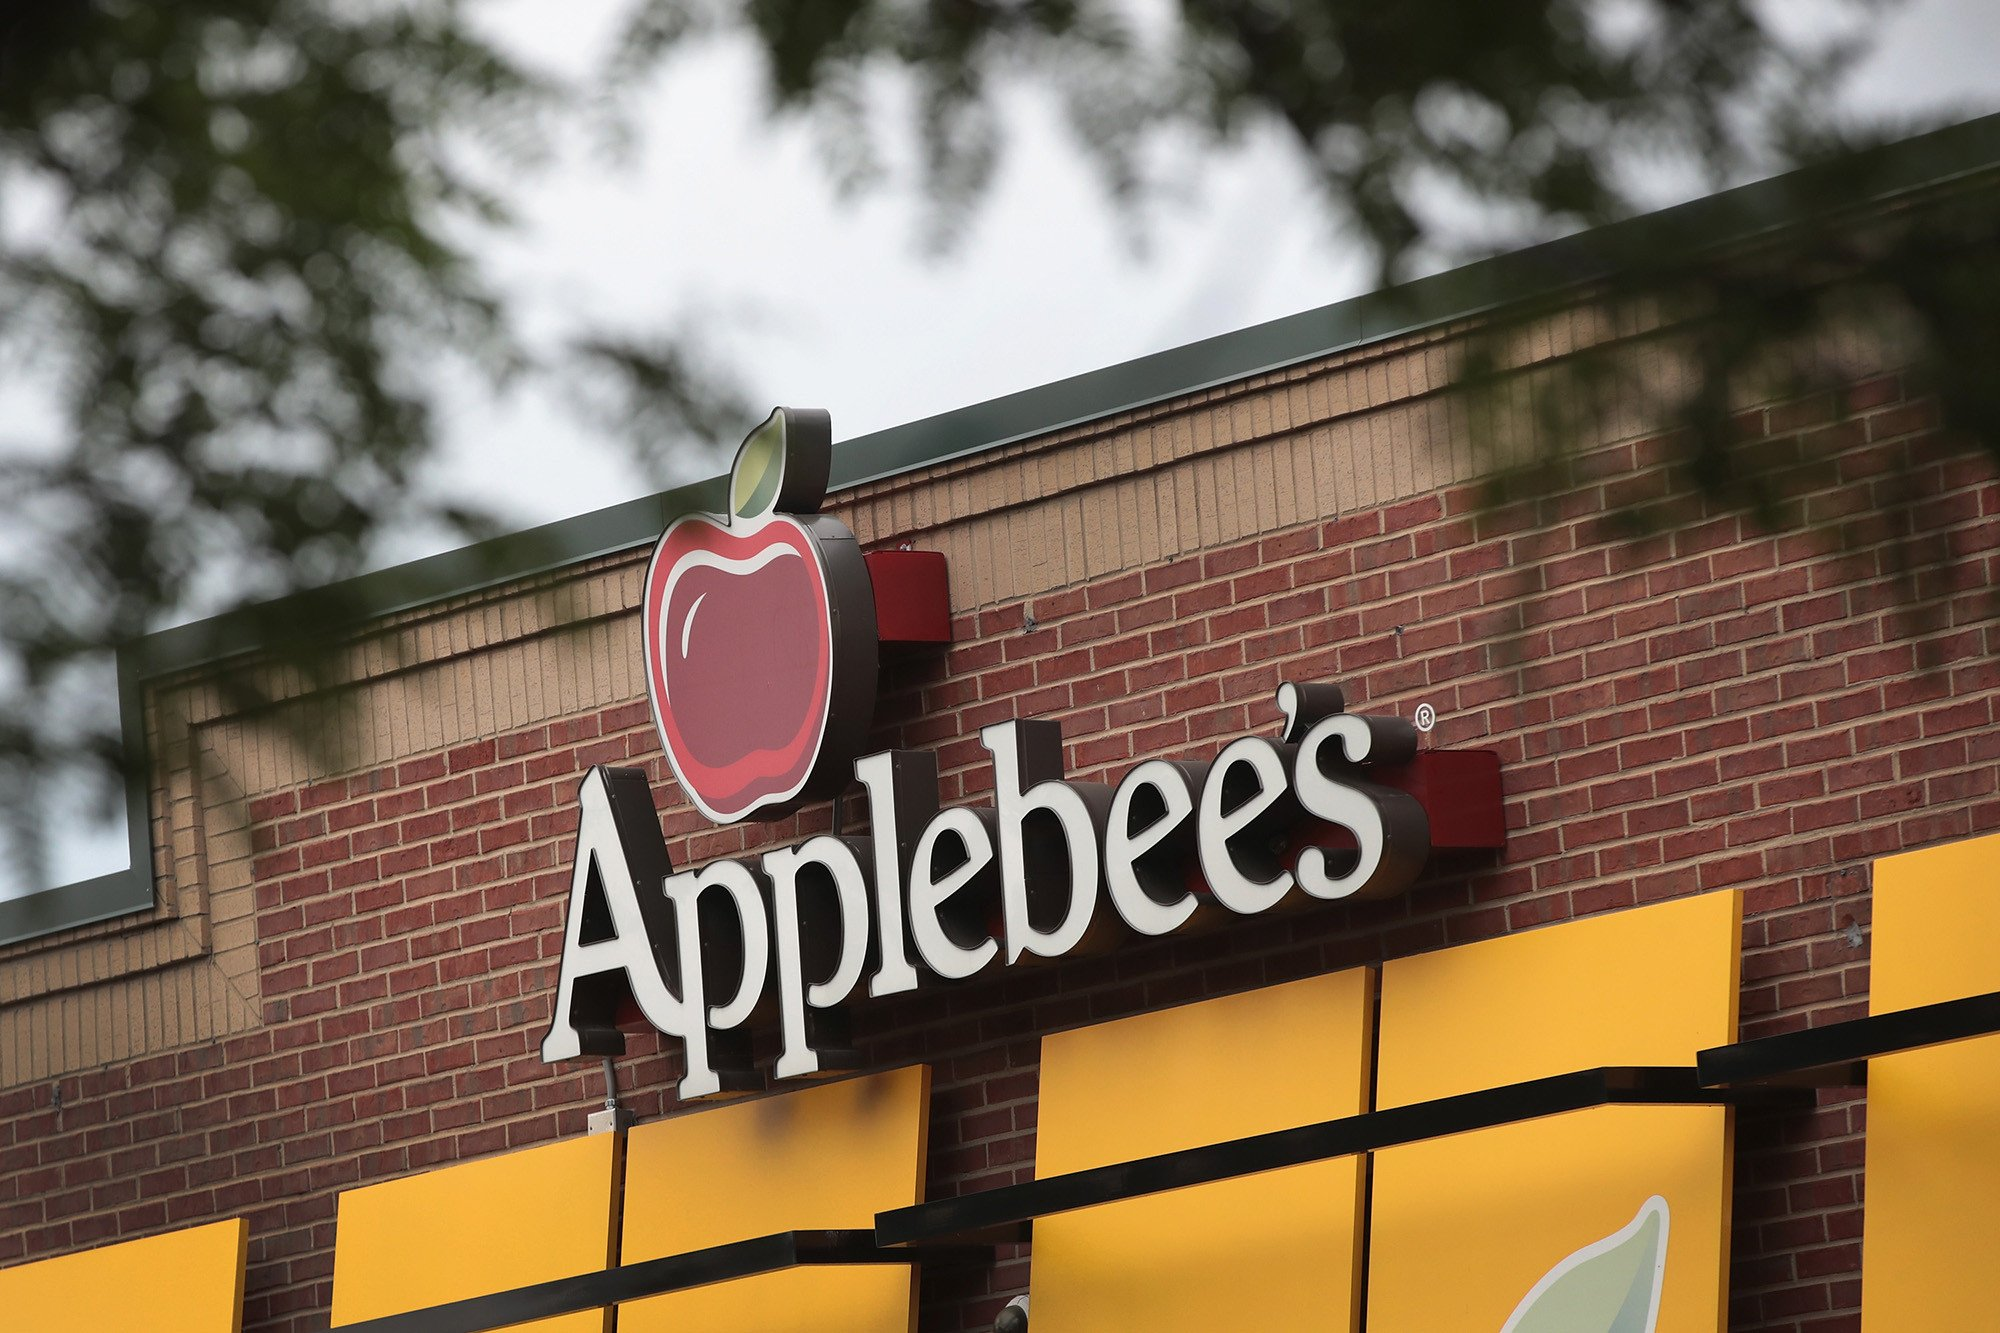 Applebee's restaurant admits it racially profiled customers